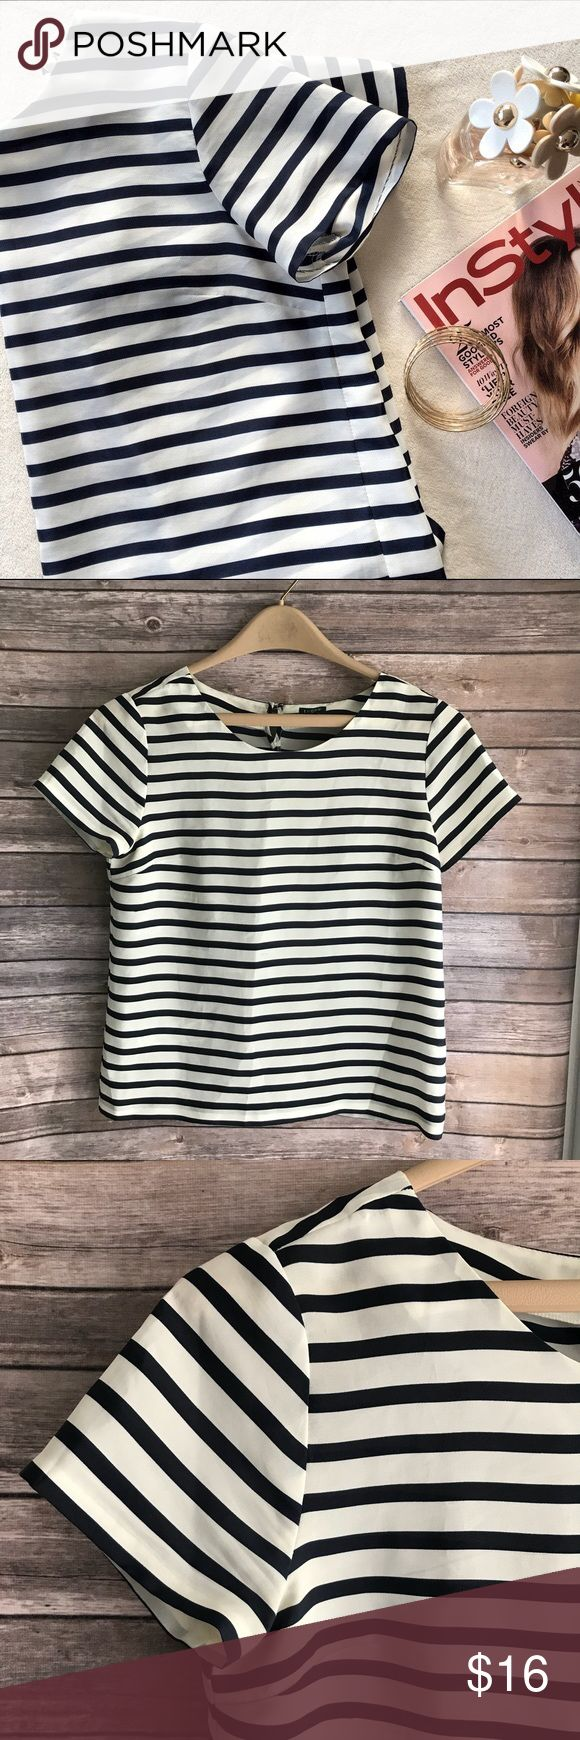 •J. Crew• Navy Striped Nautical Short Sleeve Top Nautical, short sleeve, lightweight J. Crew Striped Top, size small. Super cute design, like new condition. Made of 100% polyester.  Has Button detail on the back of the neck. Cute and can match many outfits. Perfect for layering. J. Crew Tops Blouses